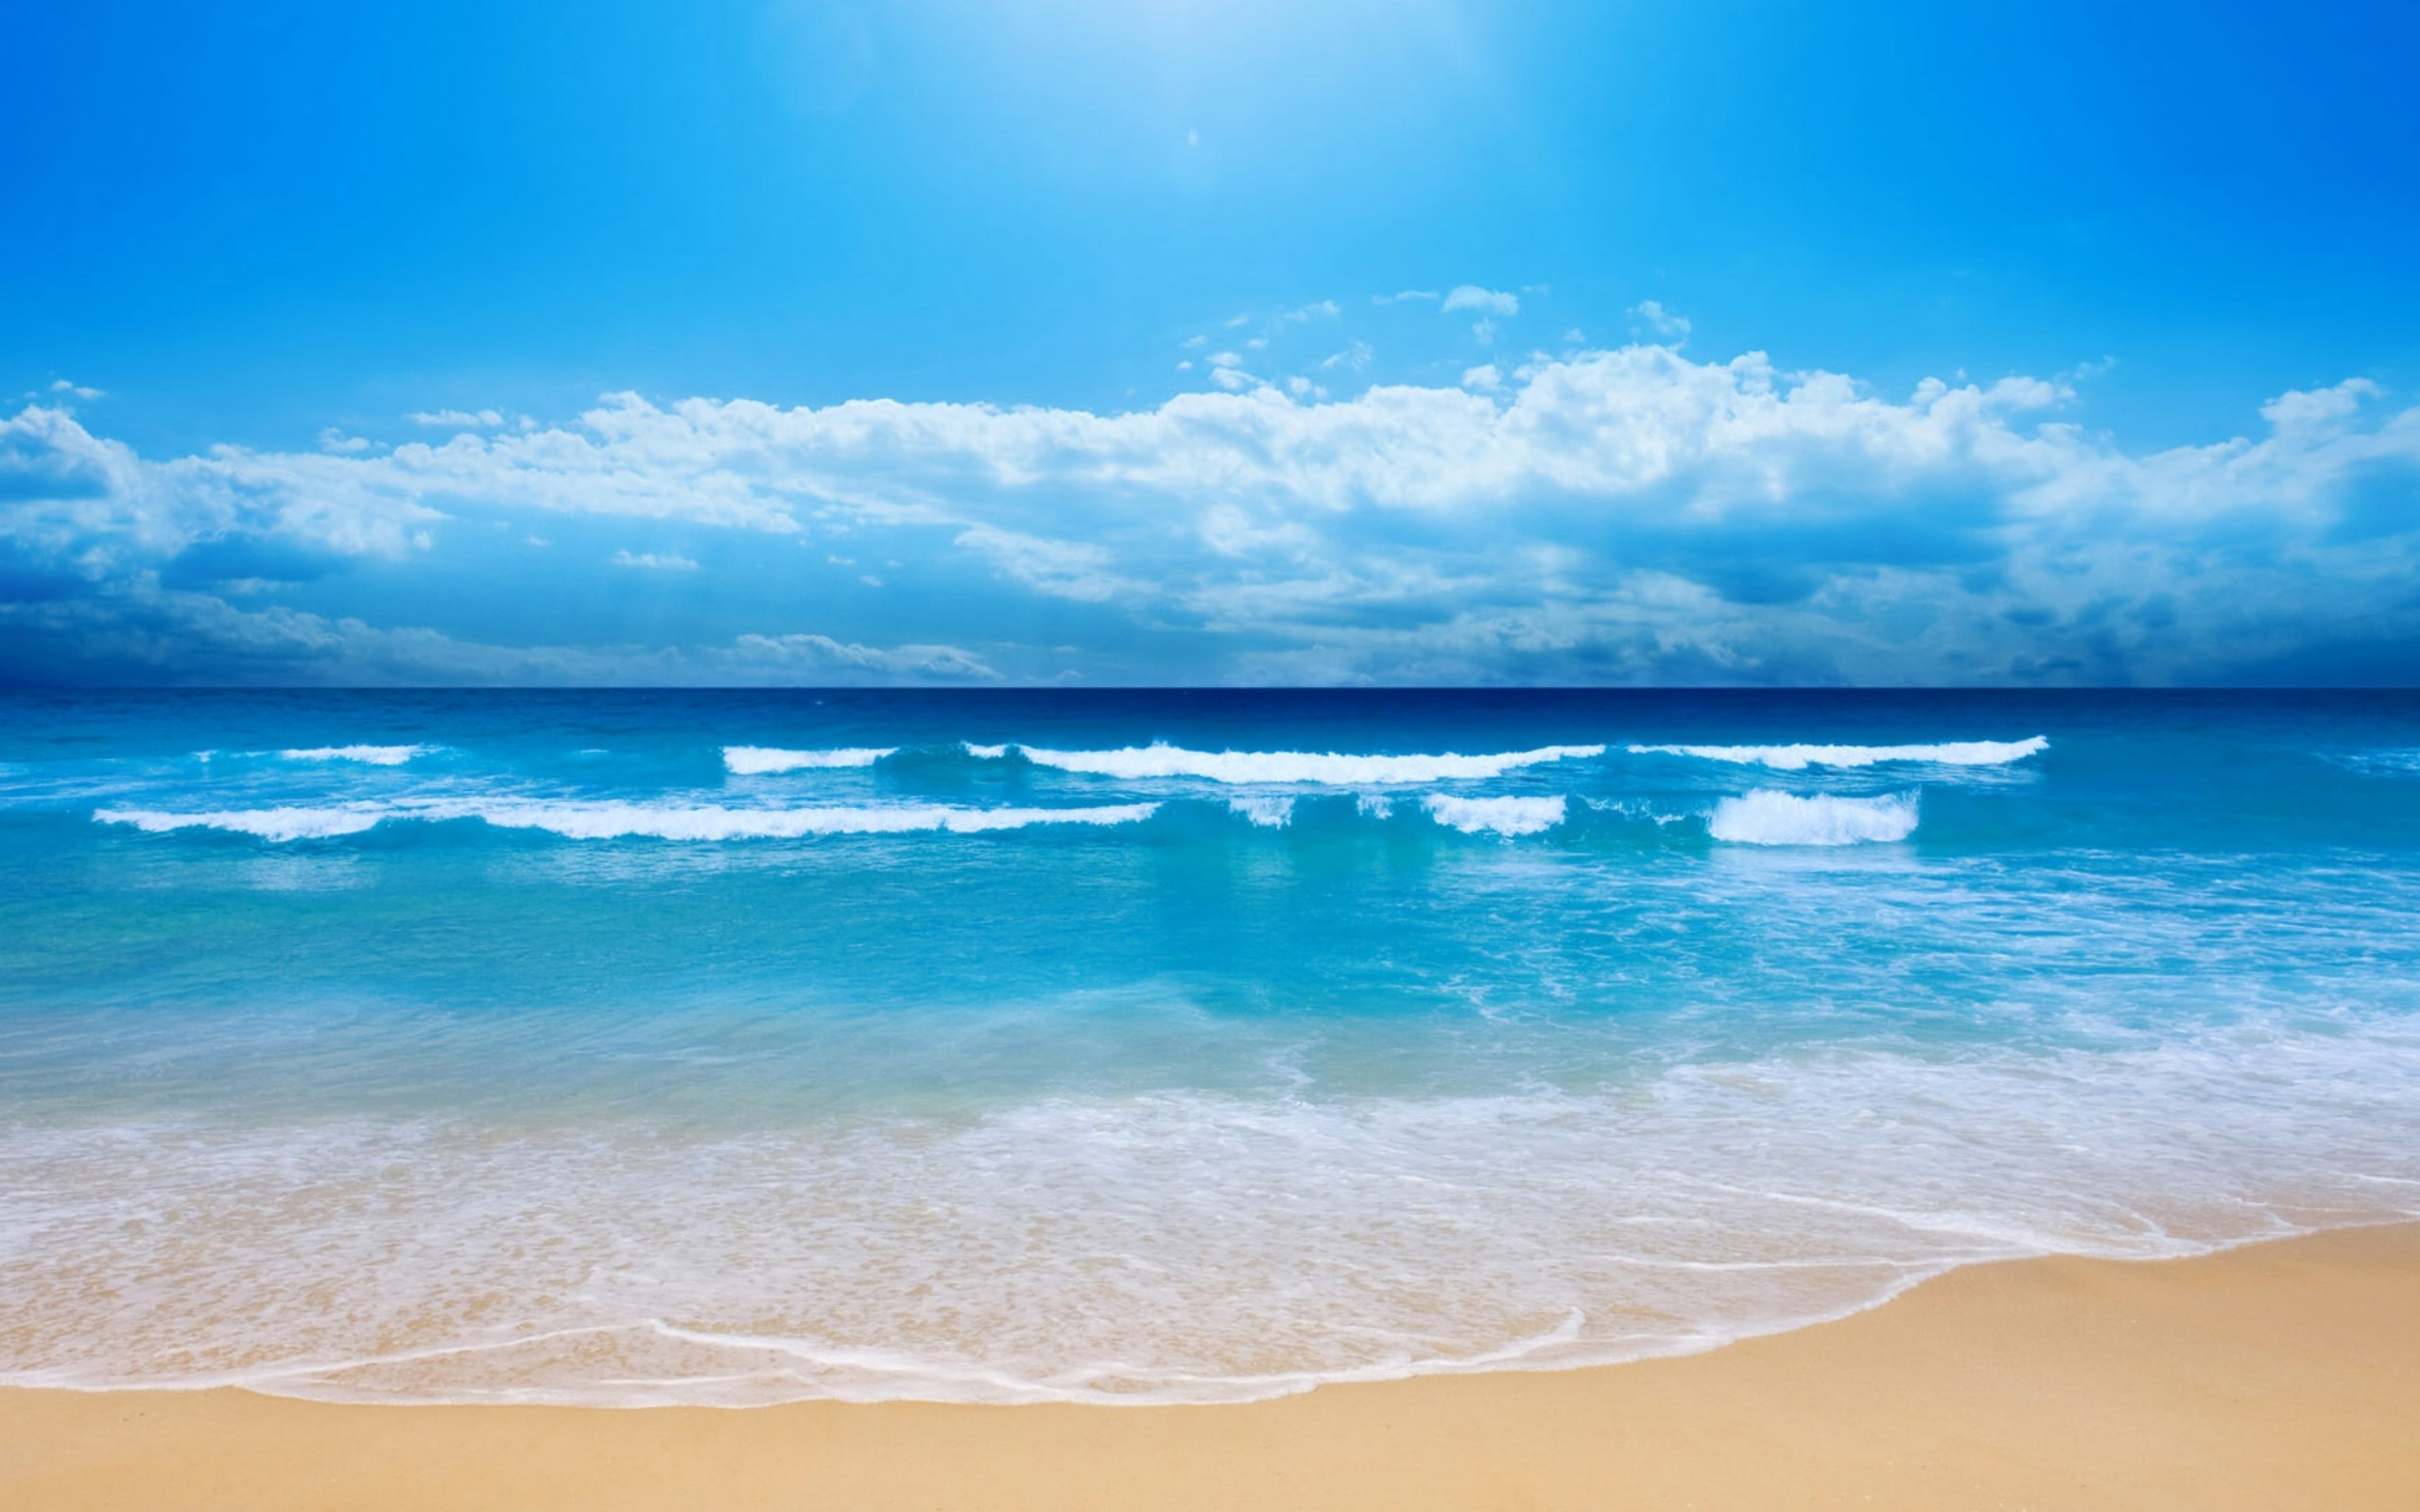 Blue Ocean Wallpaper 2560x1600 Blue, Ocean, Clouds, Landscapes, Nature ...